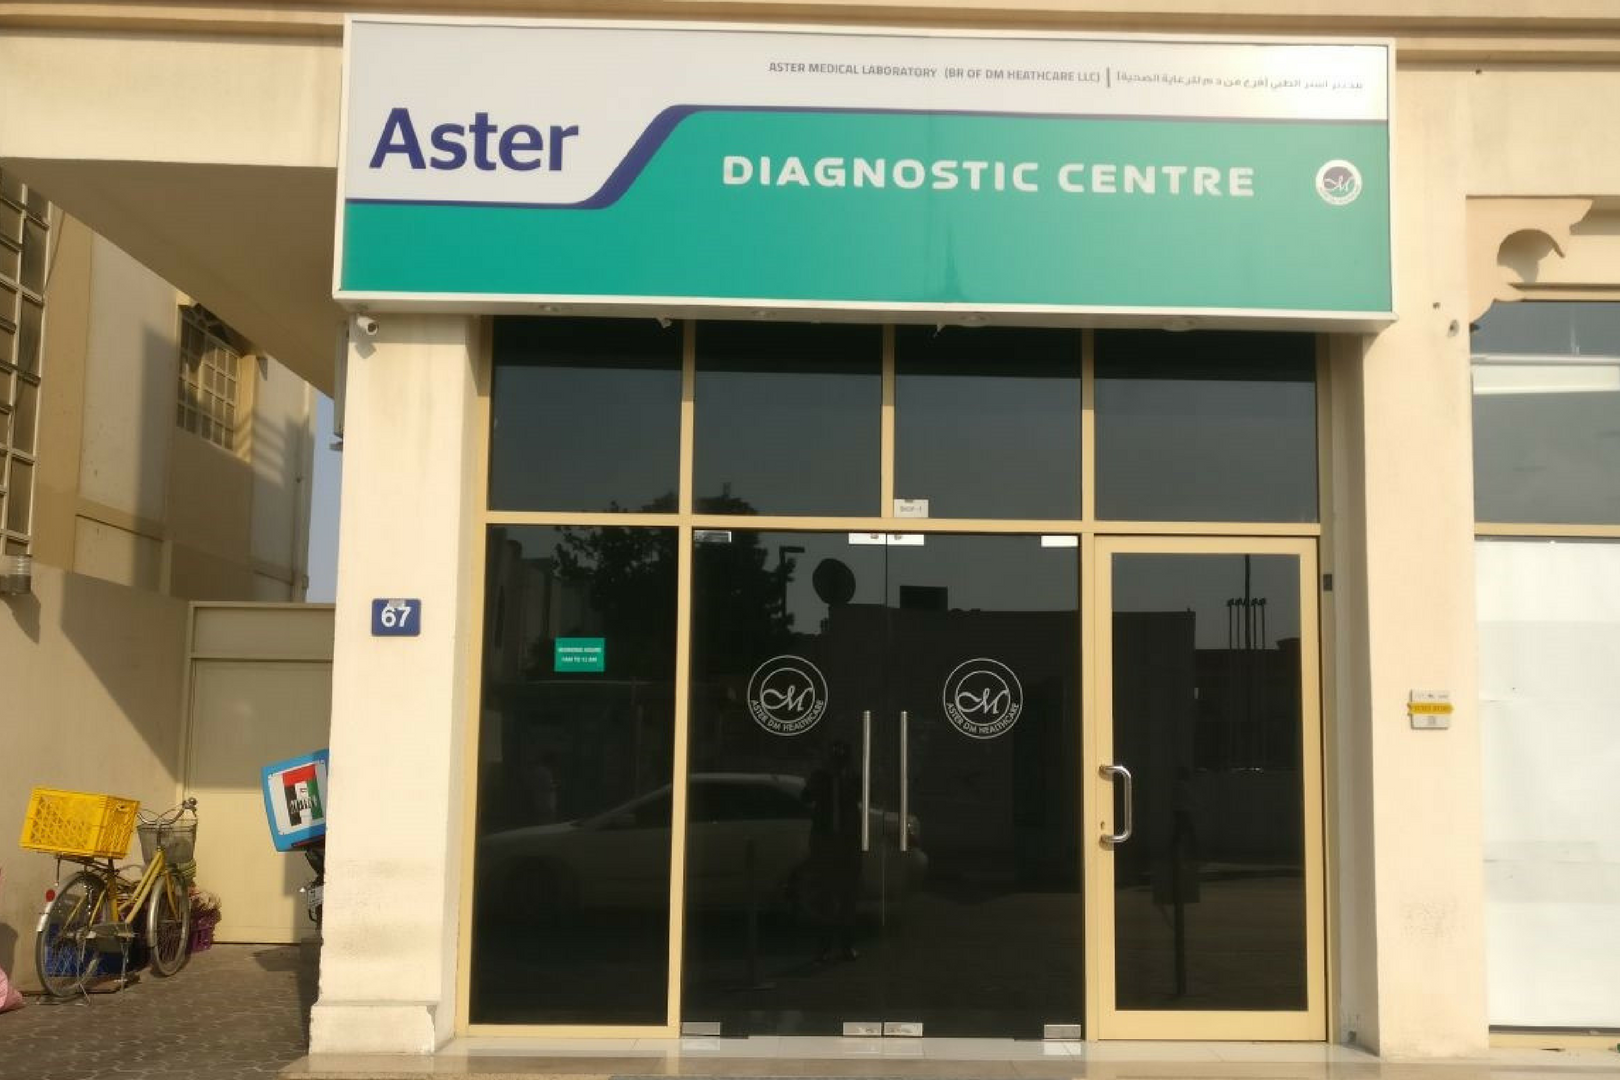 Aster Medical Laboratory, Abu Hail